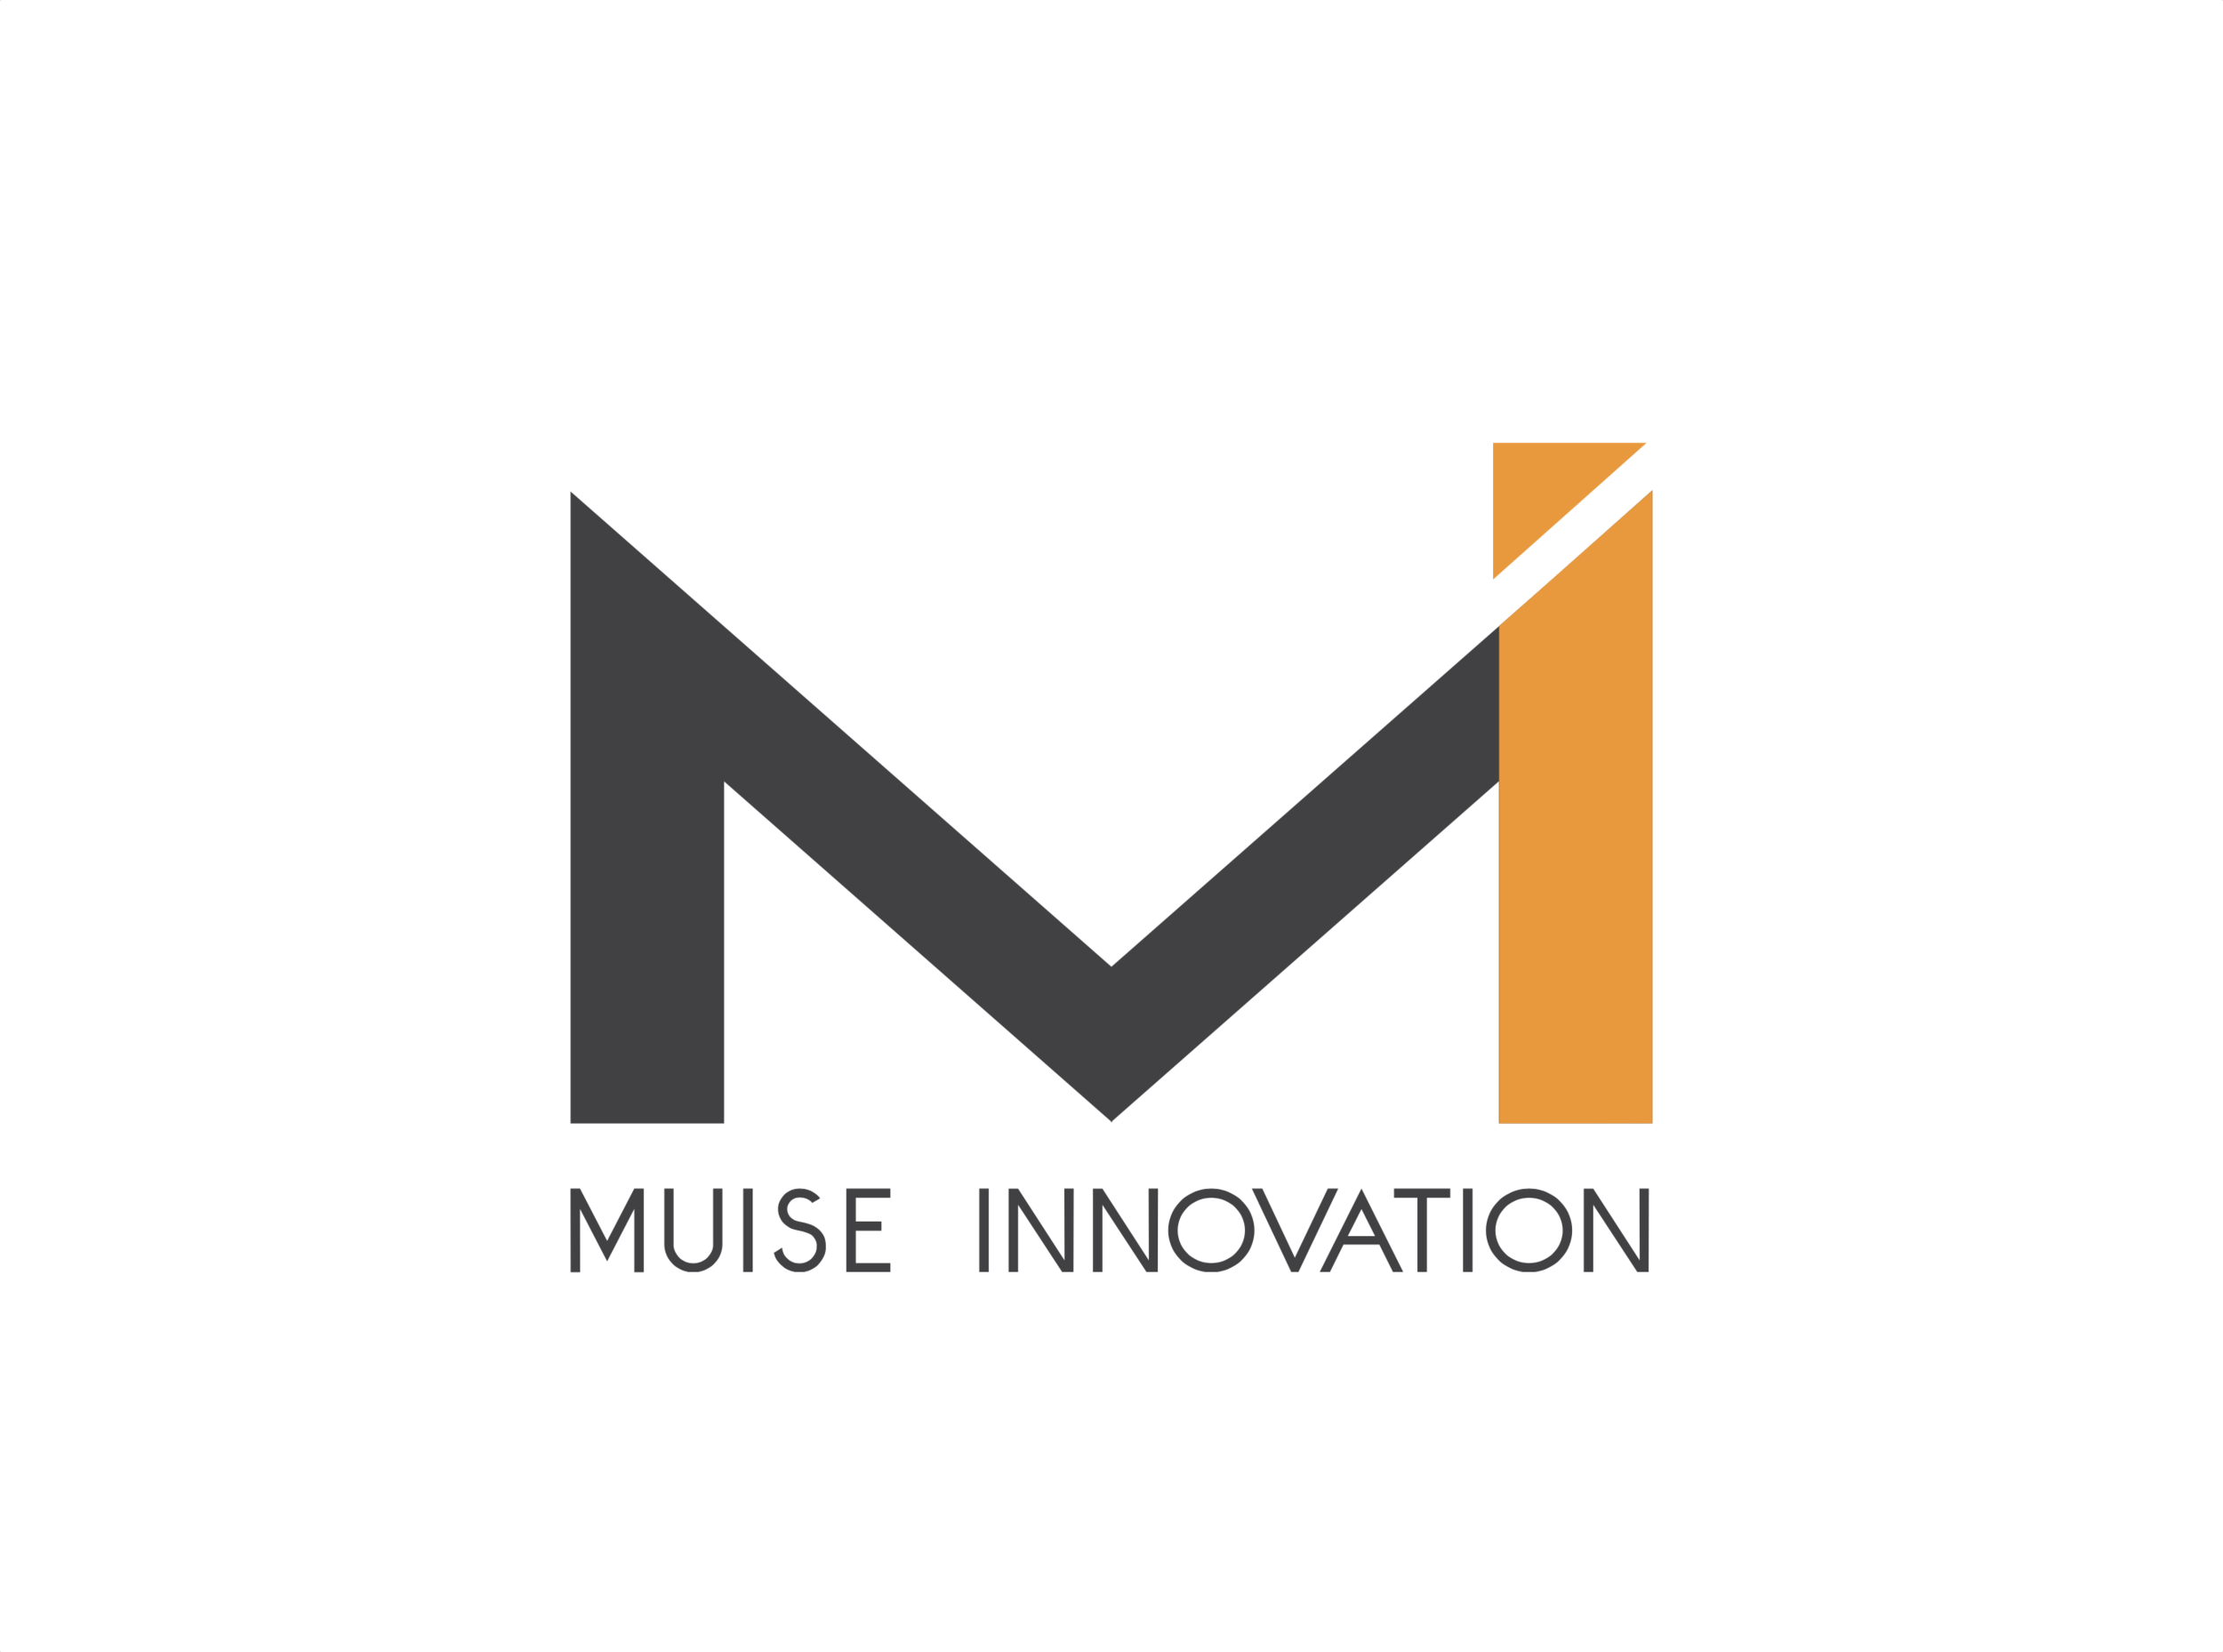 Muise Innovation Capabilites Cover.png